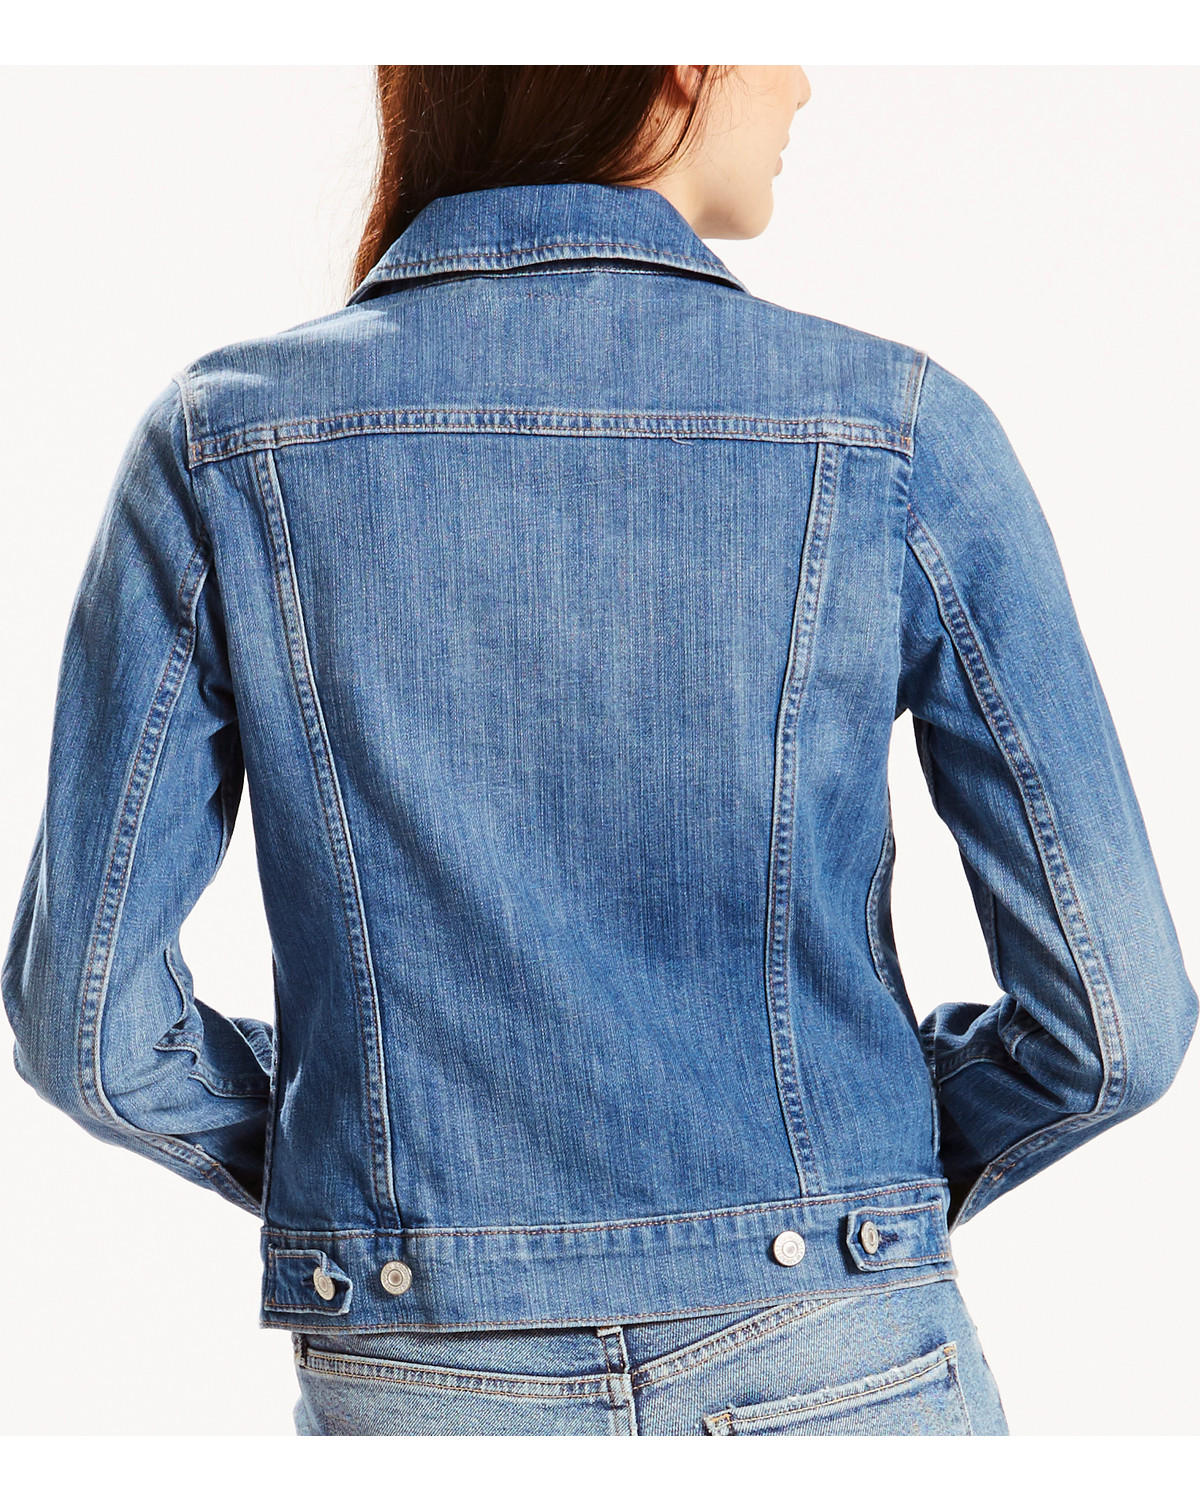 Levi's Women's Trucker Classic Jean Jacket | Boot Barn